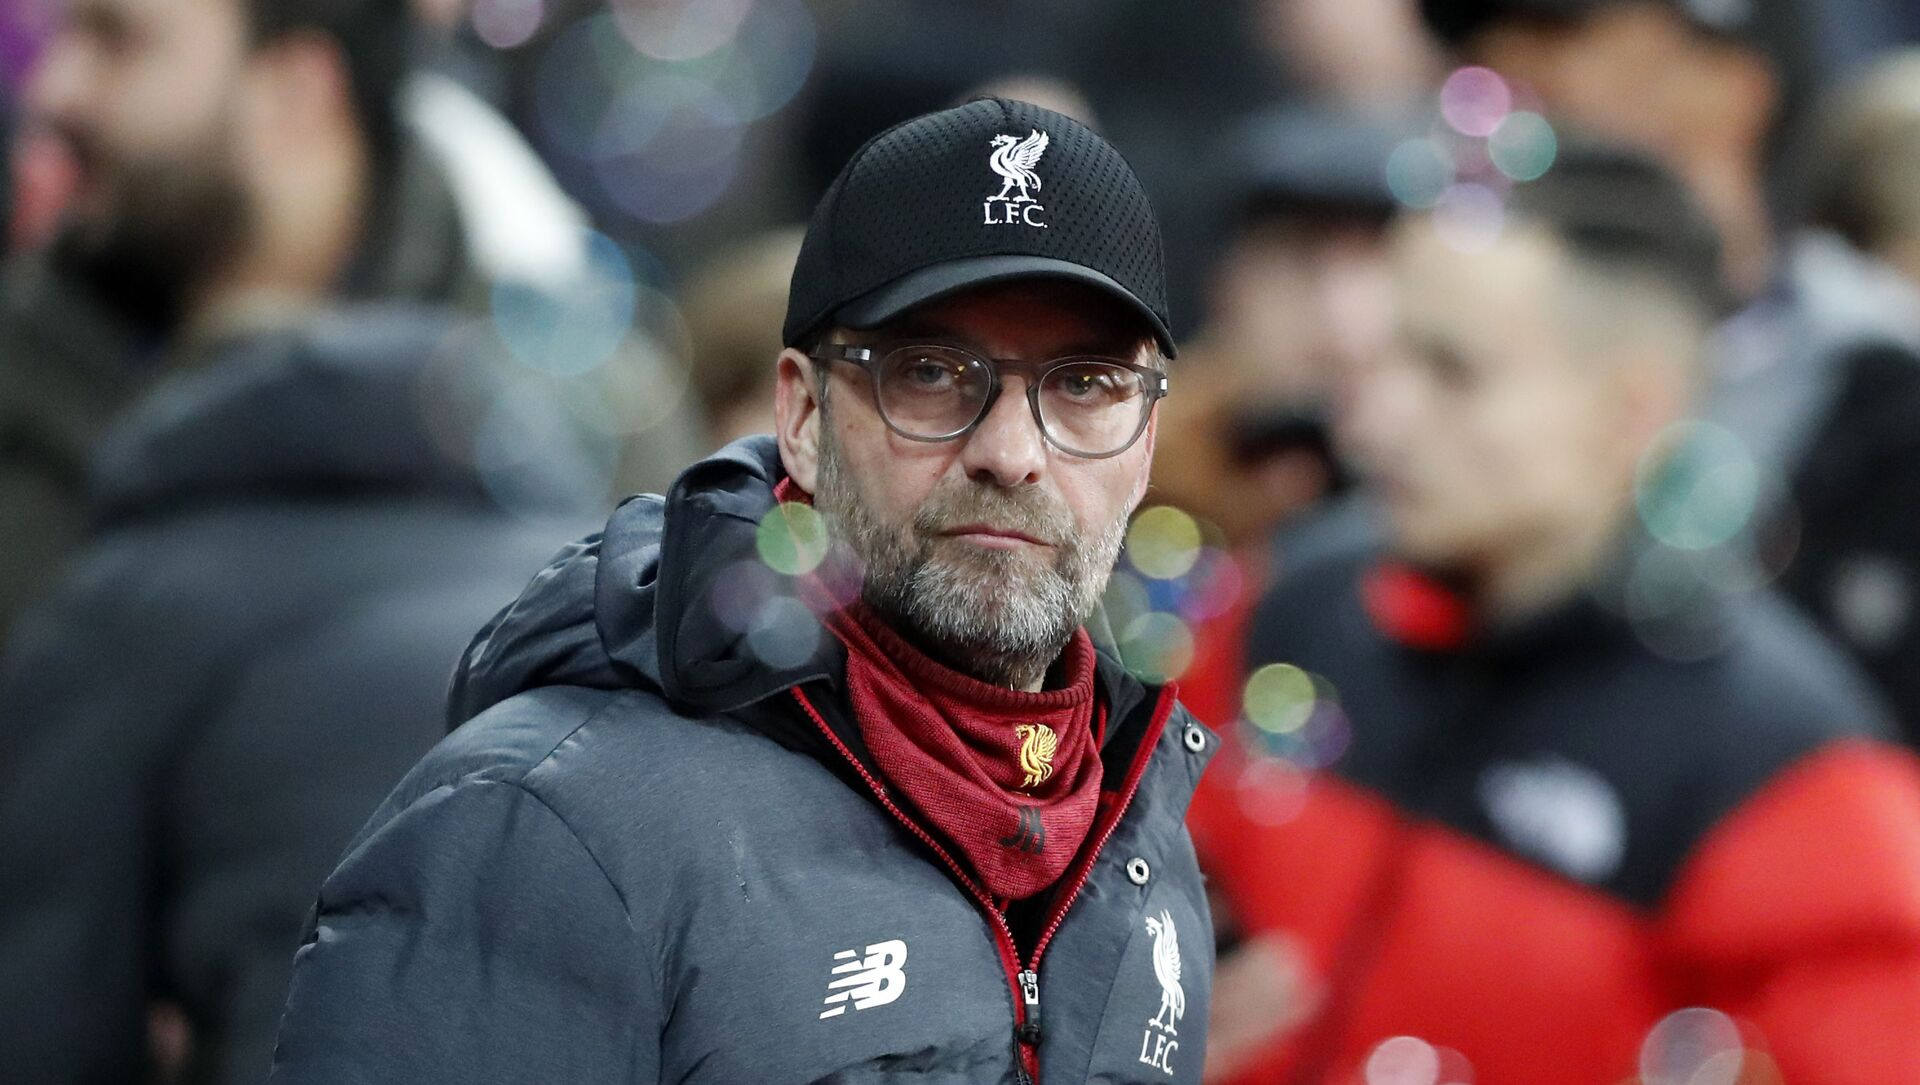 Liverpool's manager Jurgen Klopp looks on before the English Premier League soccer match between West Ham Utd and Liverpool at the London Stadium in London, Wednesday, 29 January 2020 - Sputnik International, 1920, 24.05.2021